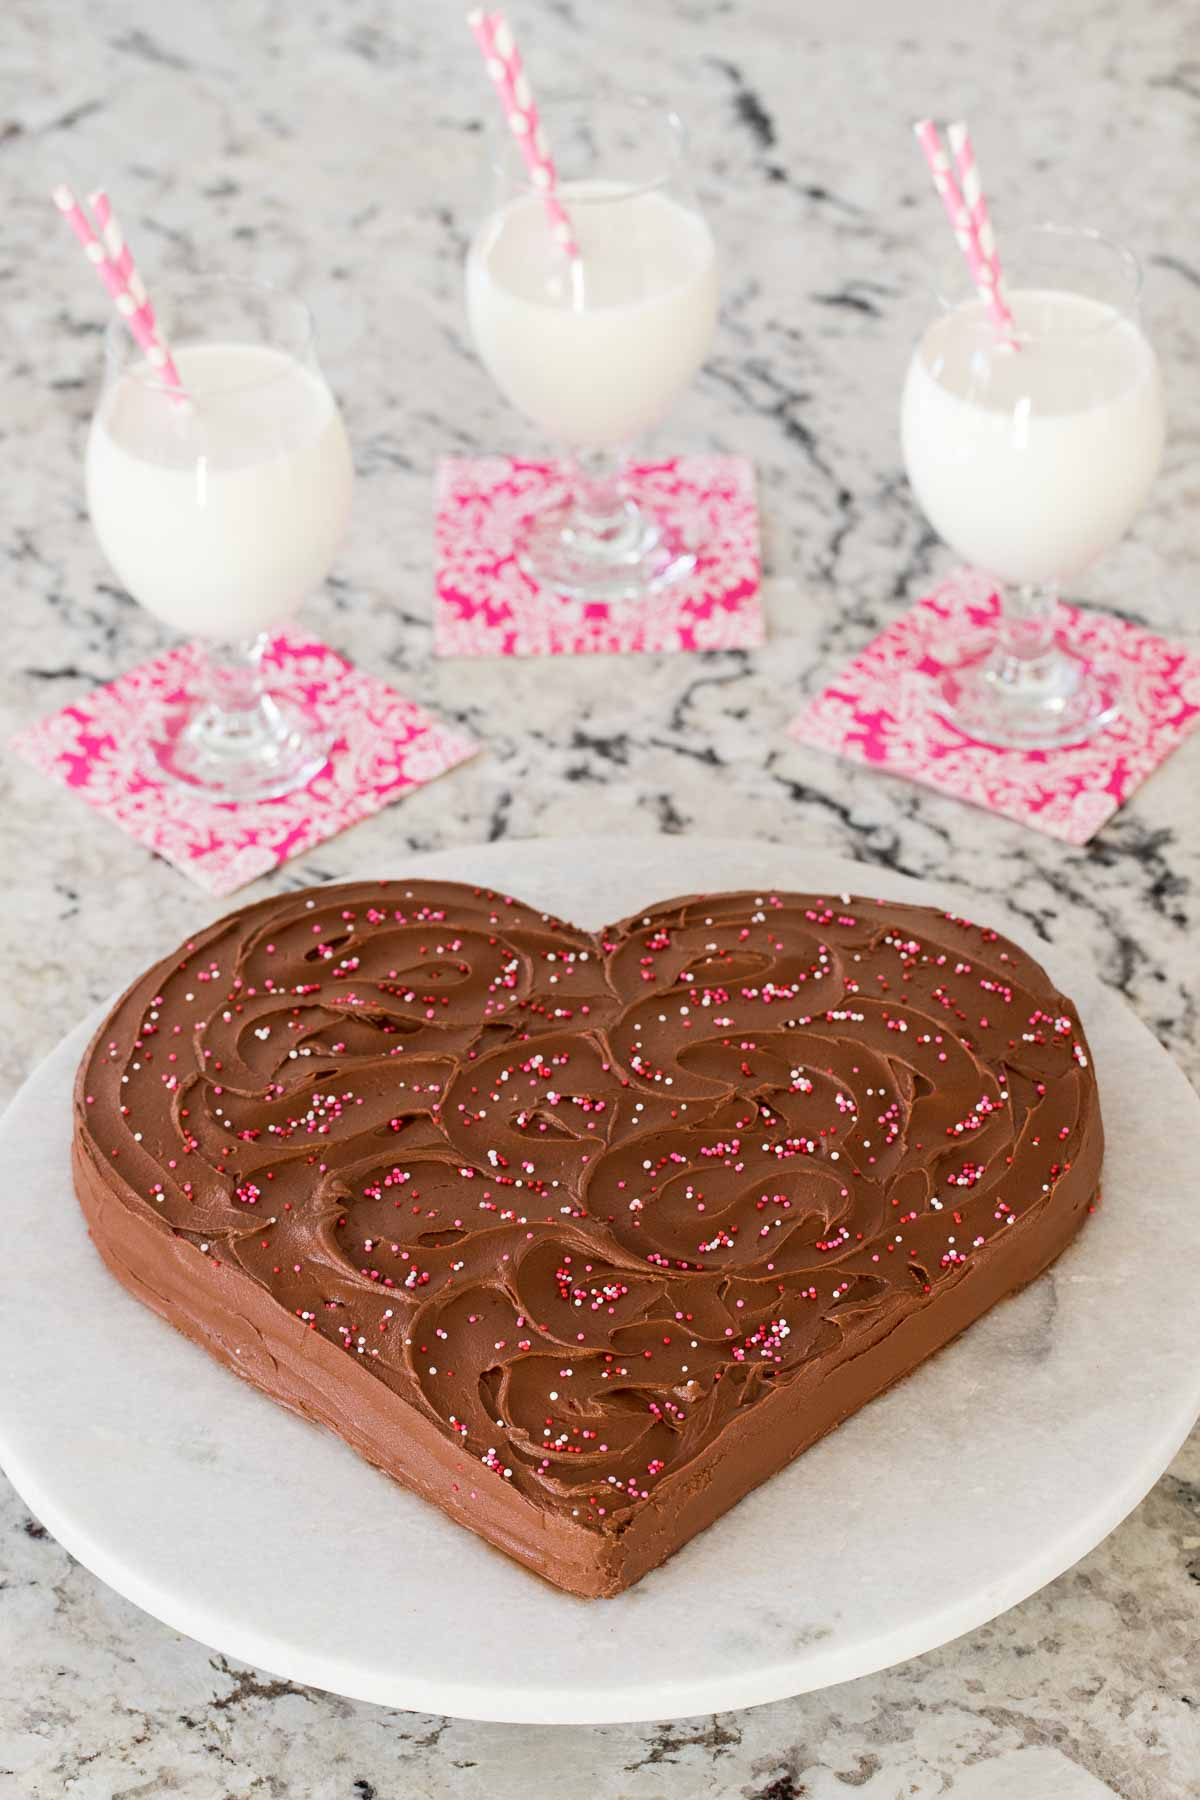 Photo Of An Easy One Bowl Chocolate Sweetheart Cake On A Marble Platter With